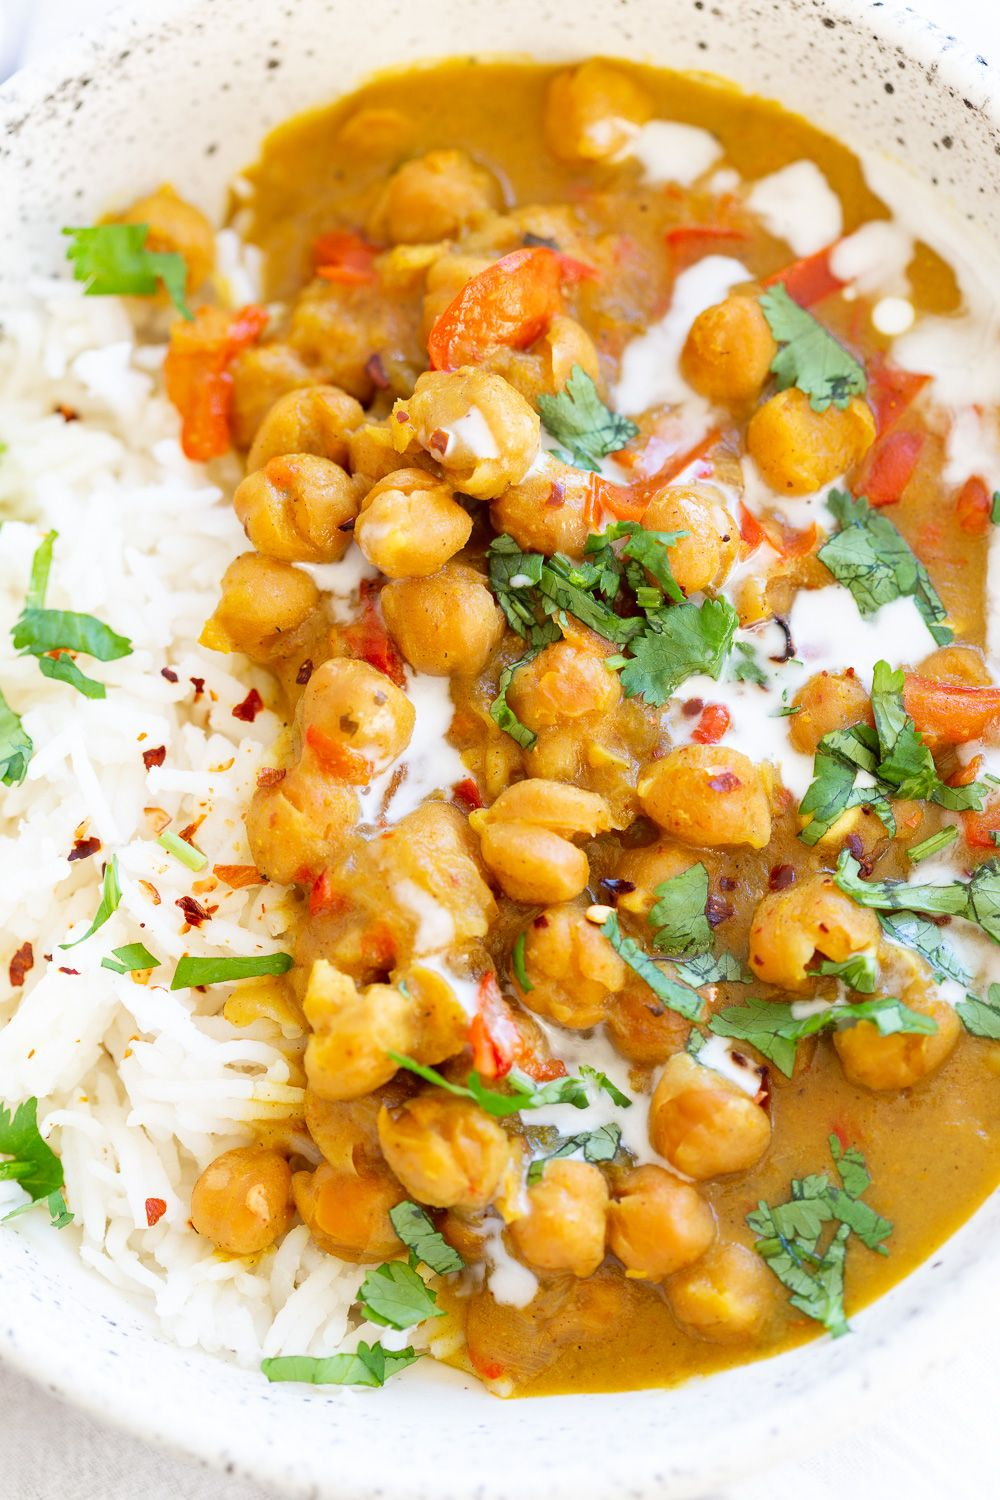 b80462a6e8a2 Chickpea Coconut Curry - Instant Pot or Saucepan. This 1 Pot Coconut  Chickpea Curry is